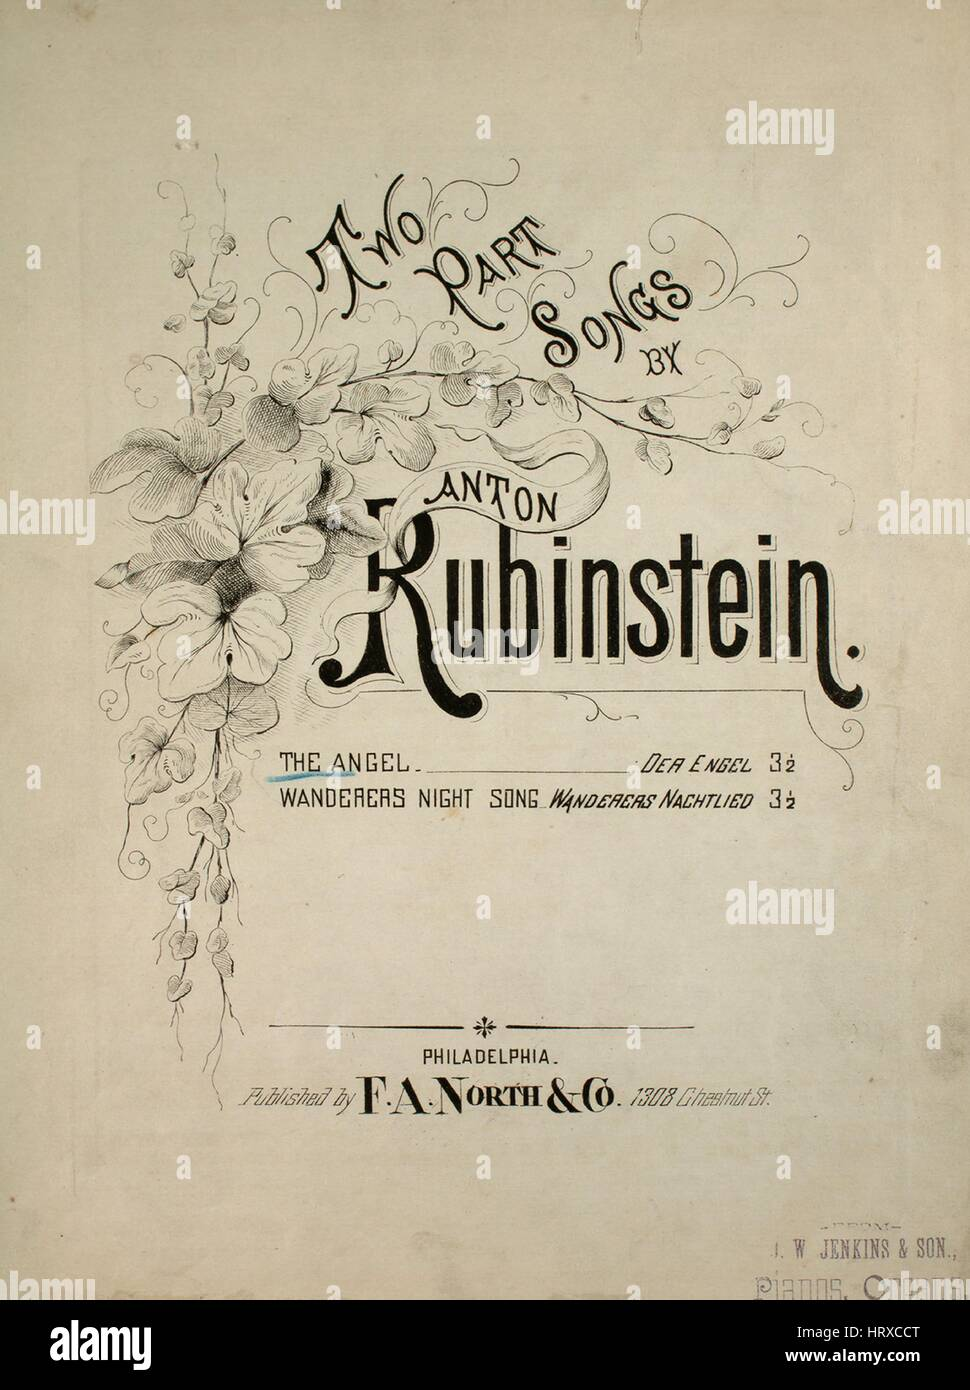 Sheet music cover image of the song 'Two Part Songs by Anton